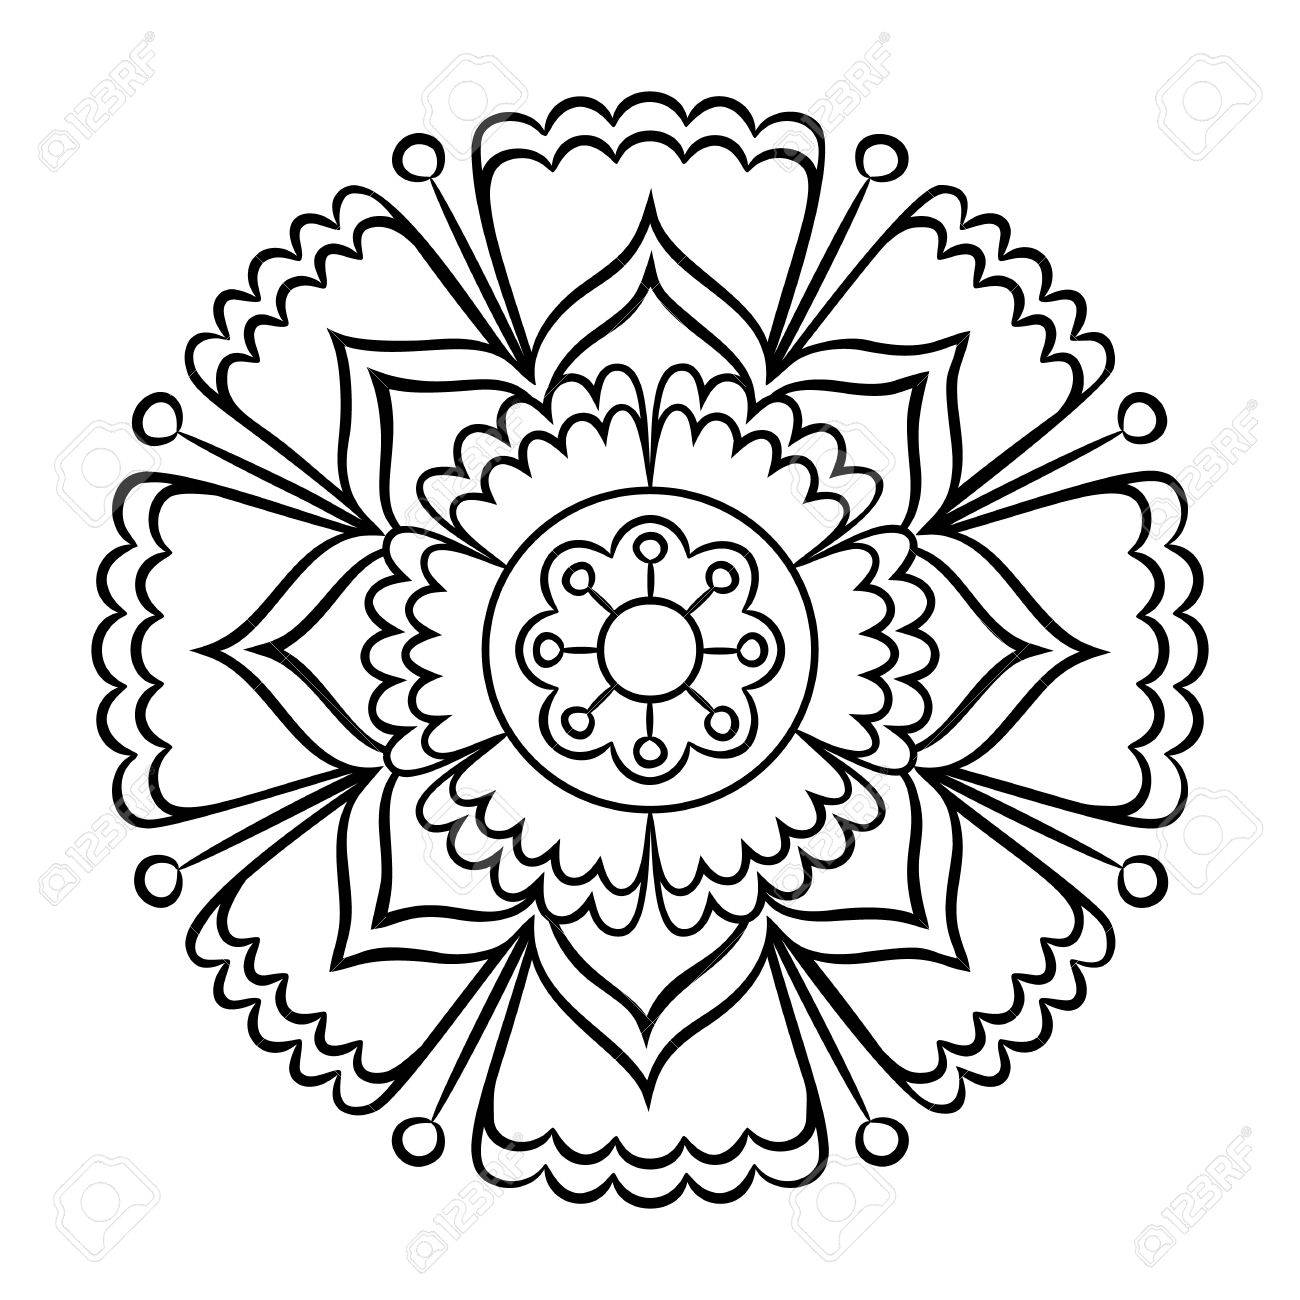 Doodle Mandala Coloring Page. Outline Floral Design Element ...